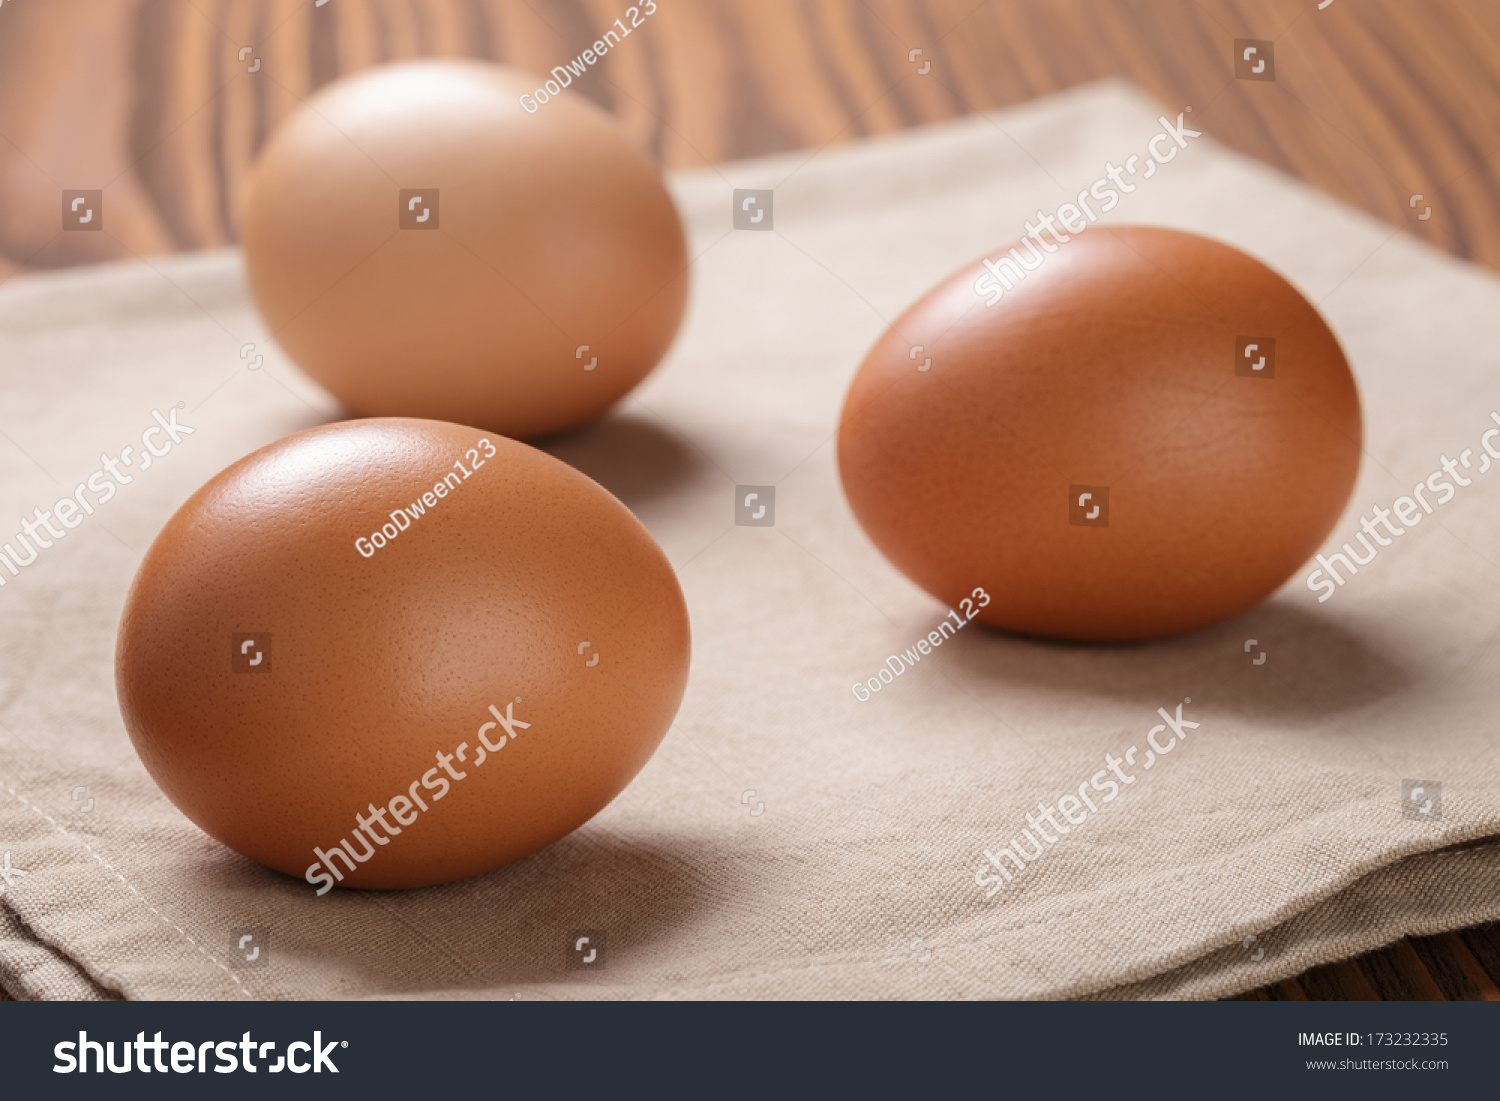 brown eggs  on napkin over table, selective focus #173232335